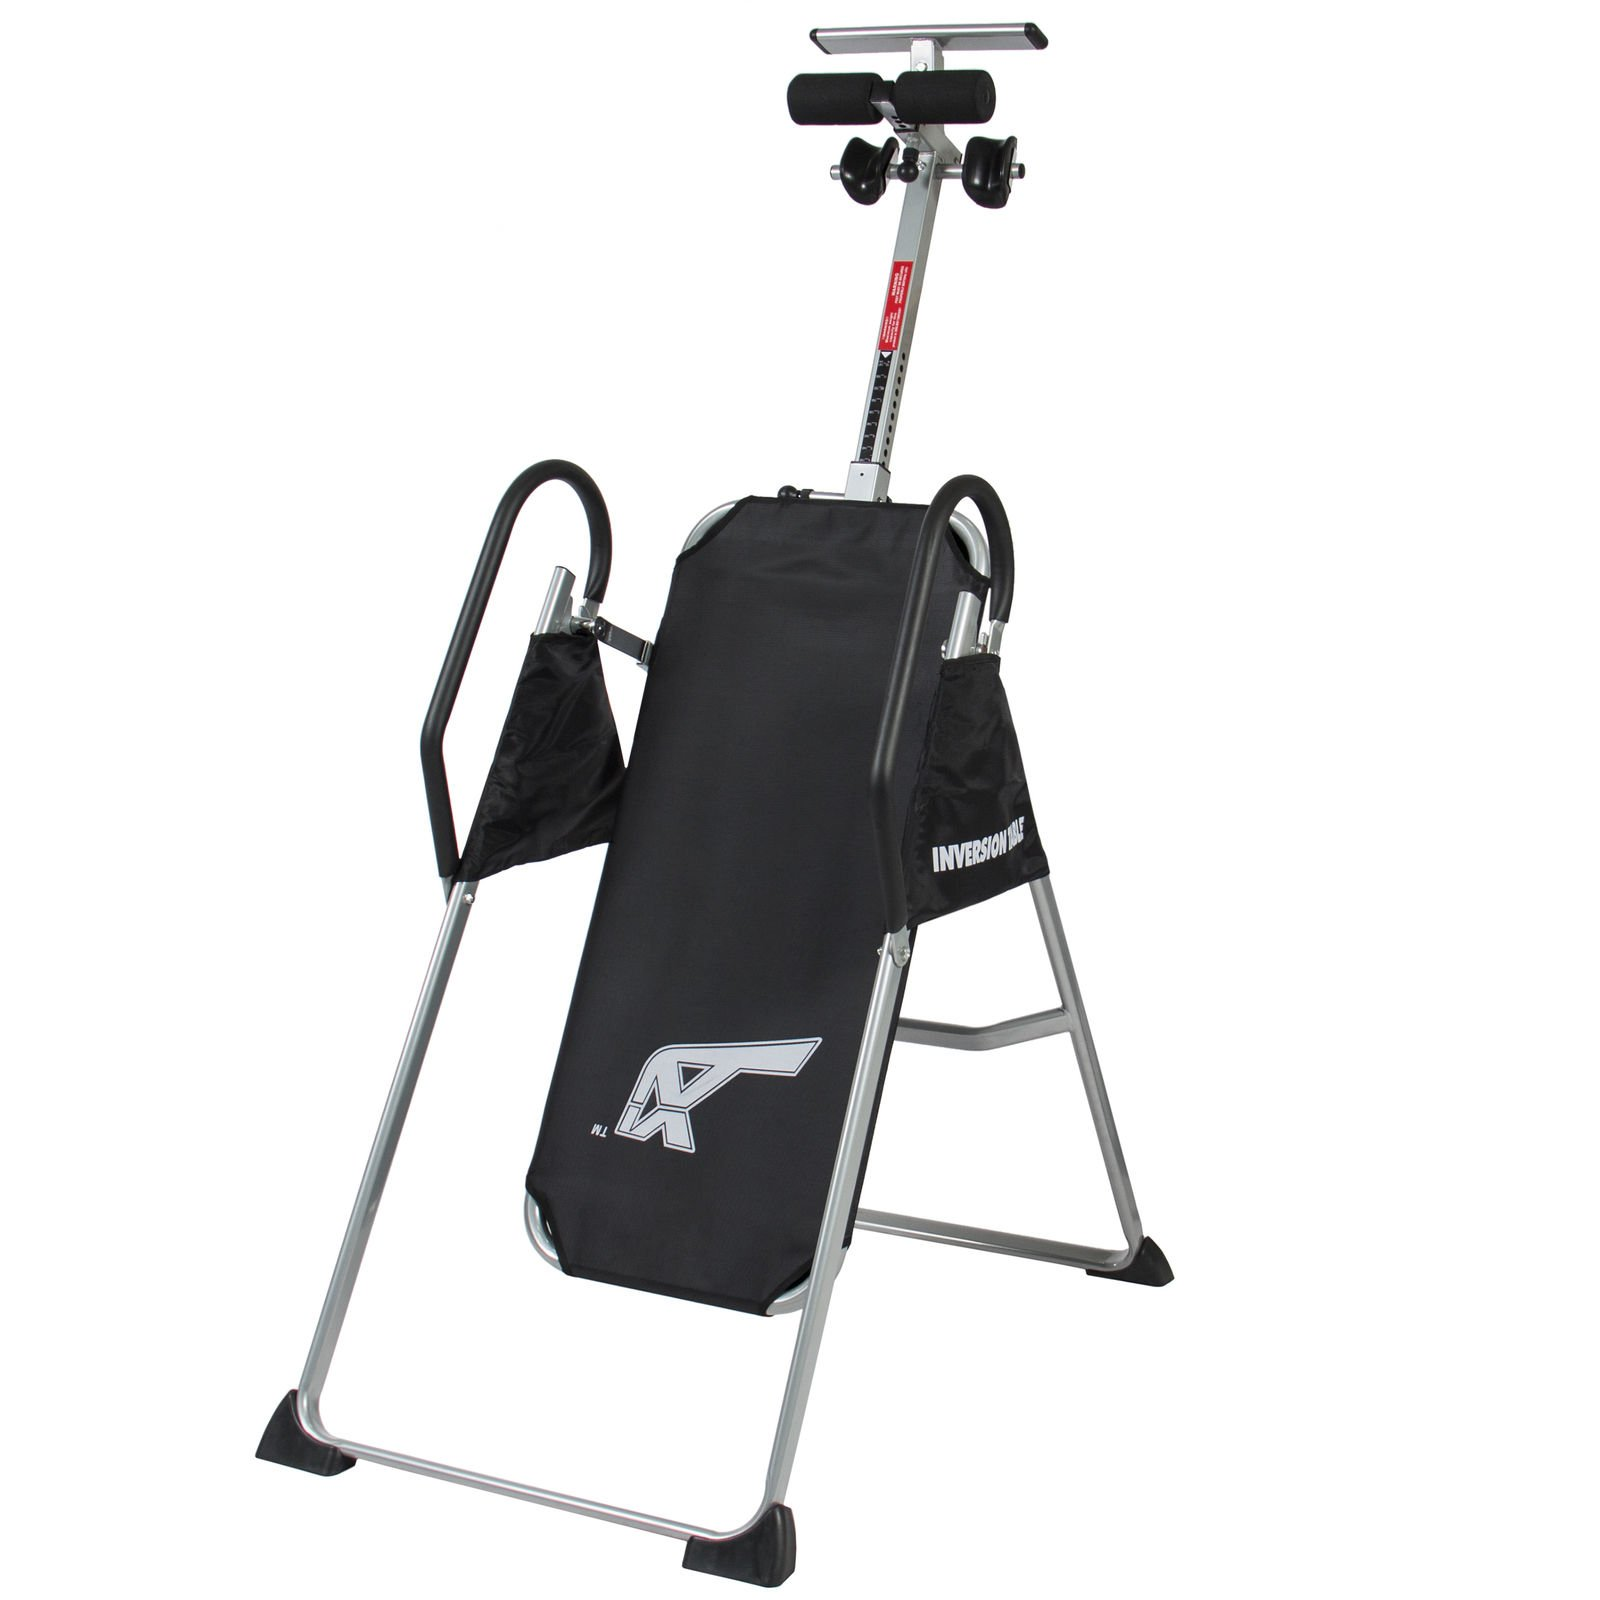 HUGE Popular Inversion Table ProDeluxe Fitness Chiropractic & Table Exercise - Back Reflexology